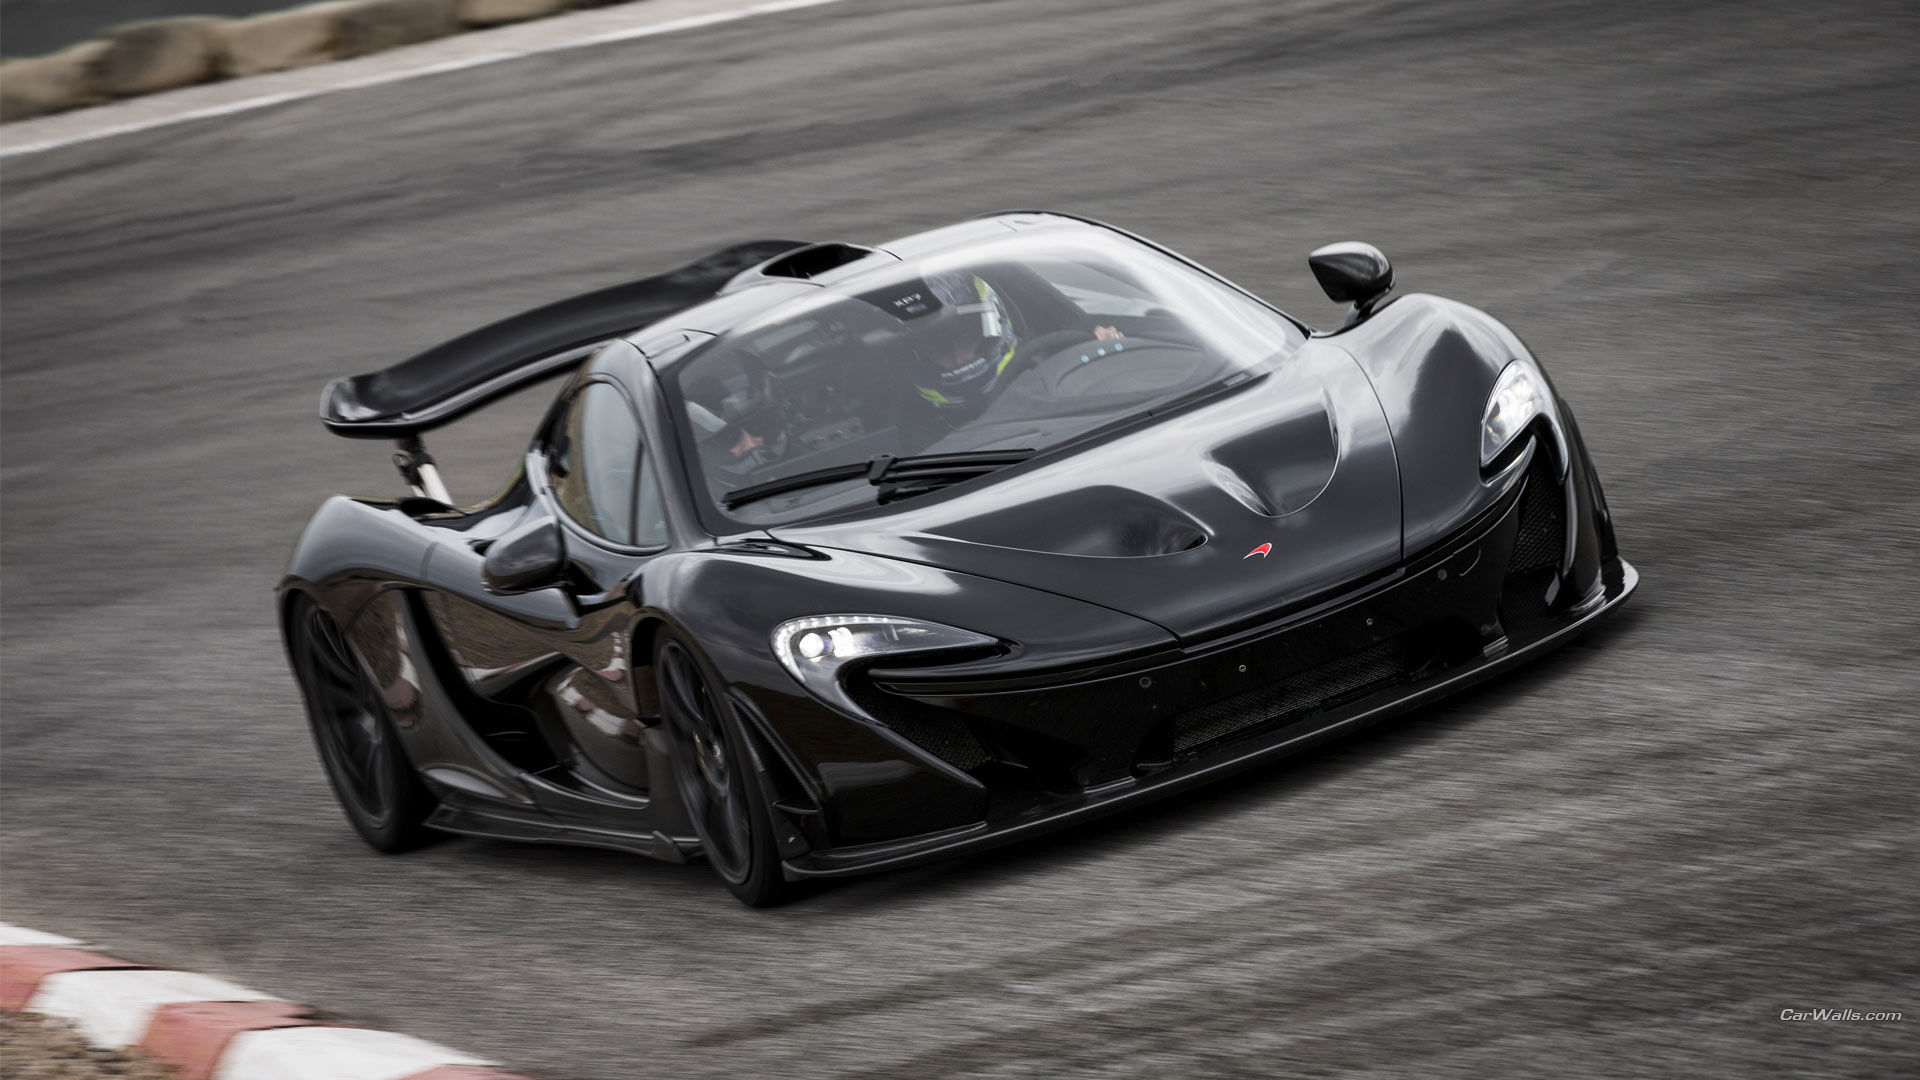 McLaren P1 Wallpaper for Android | McLaren | Pinterest | To be